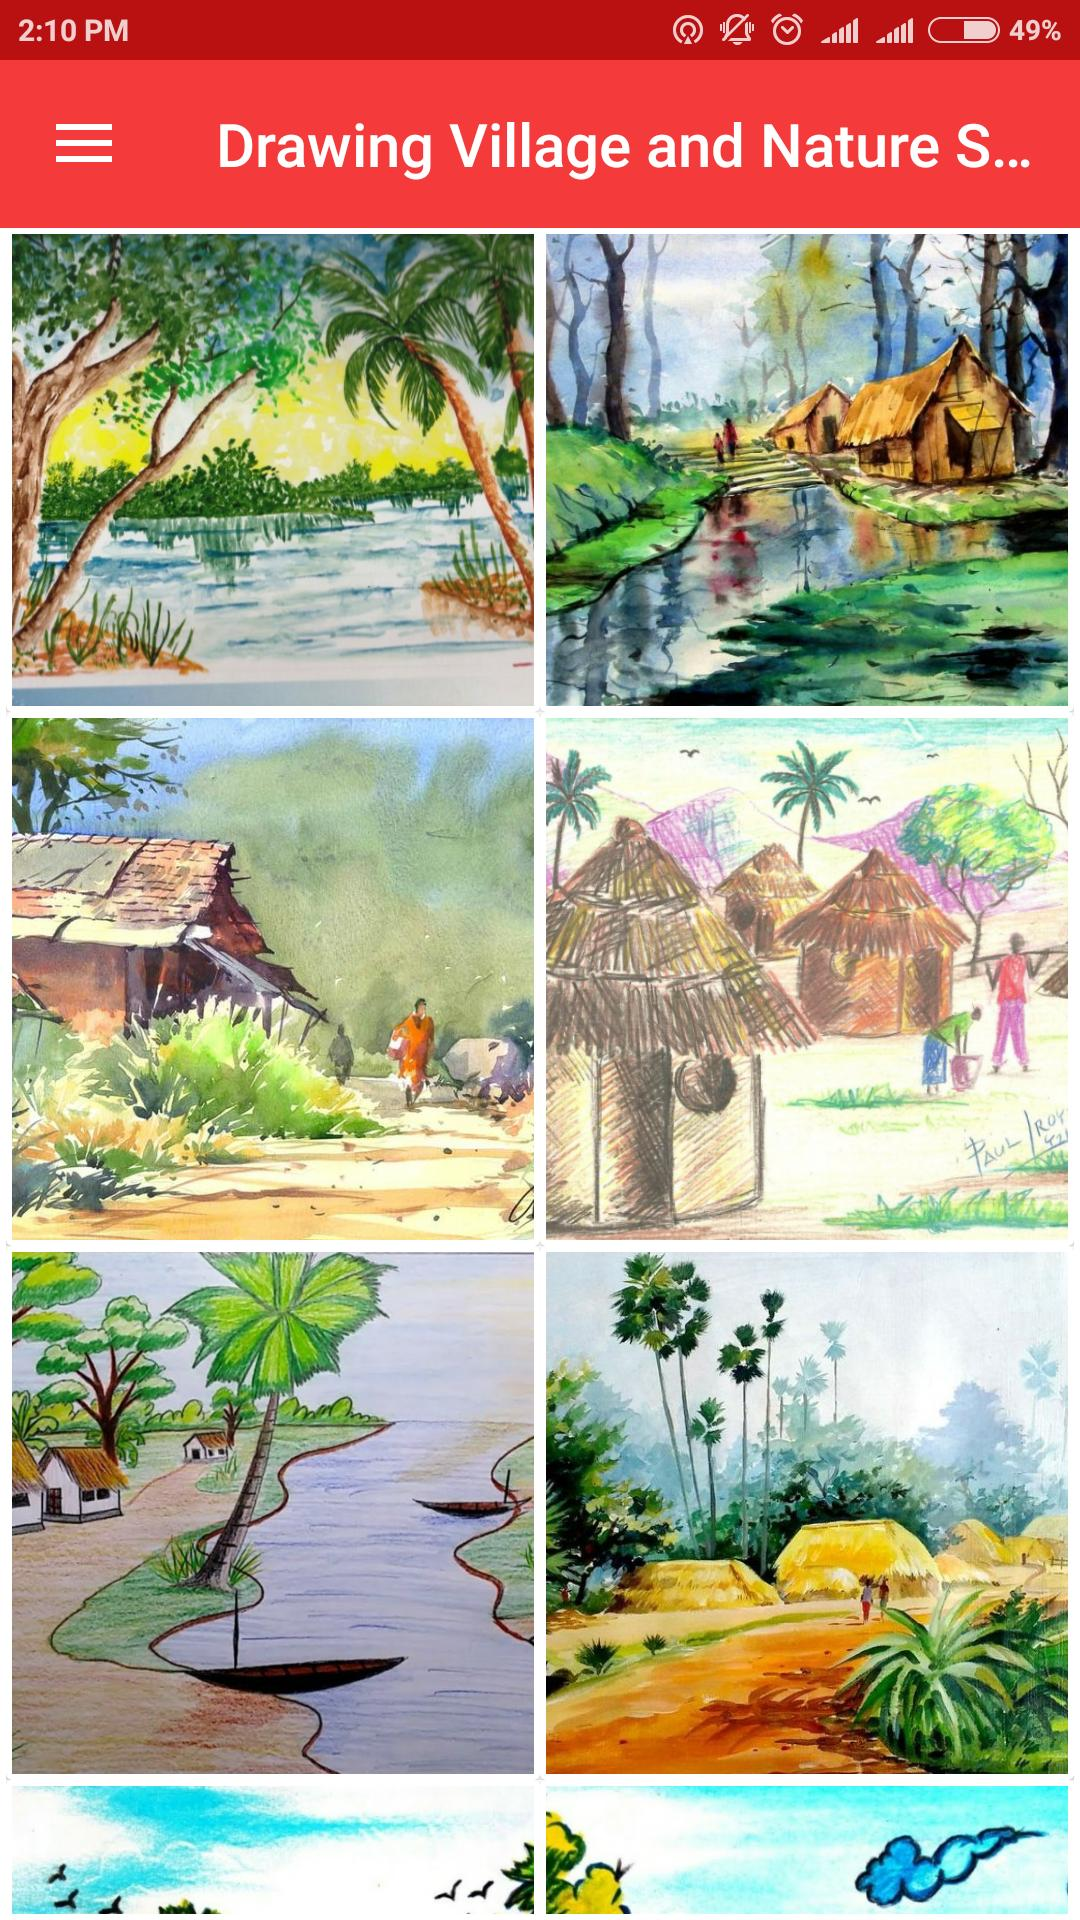 Drawing Village And Nature Scenery For Android Apk Download